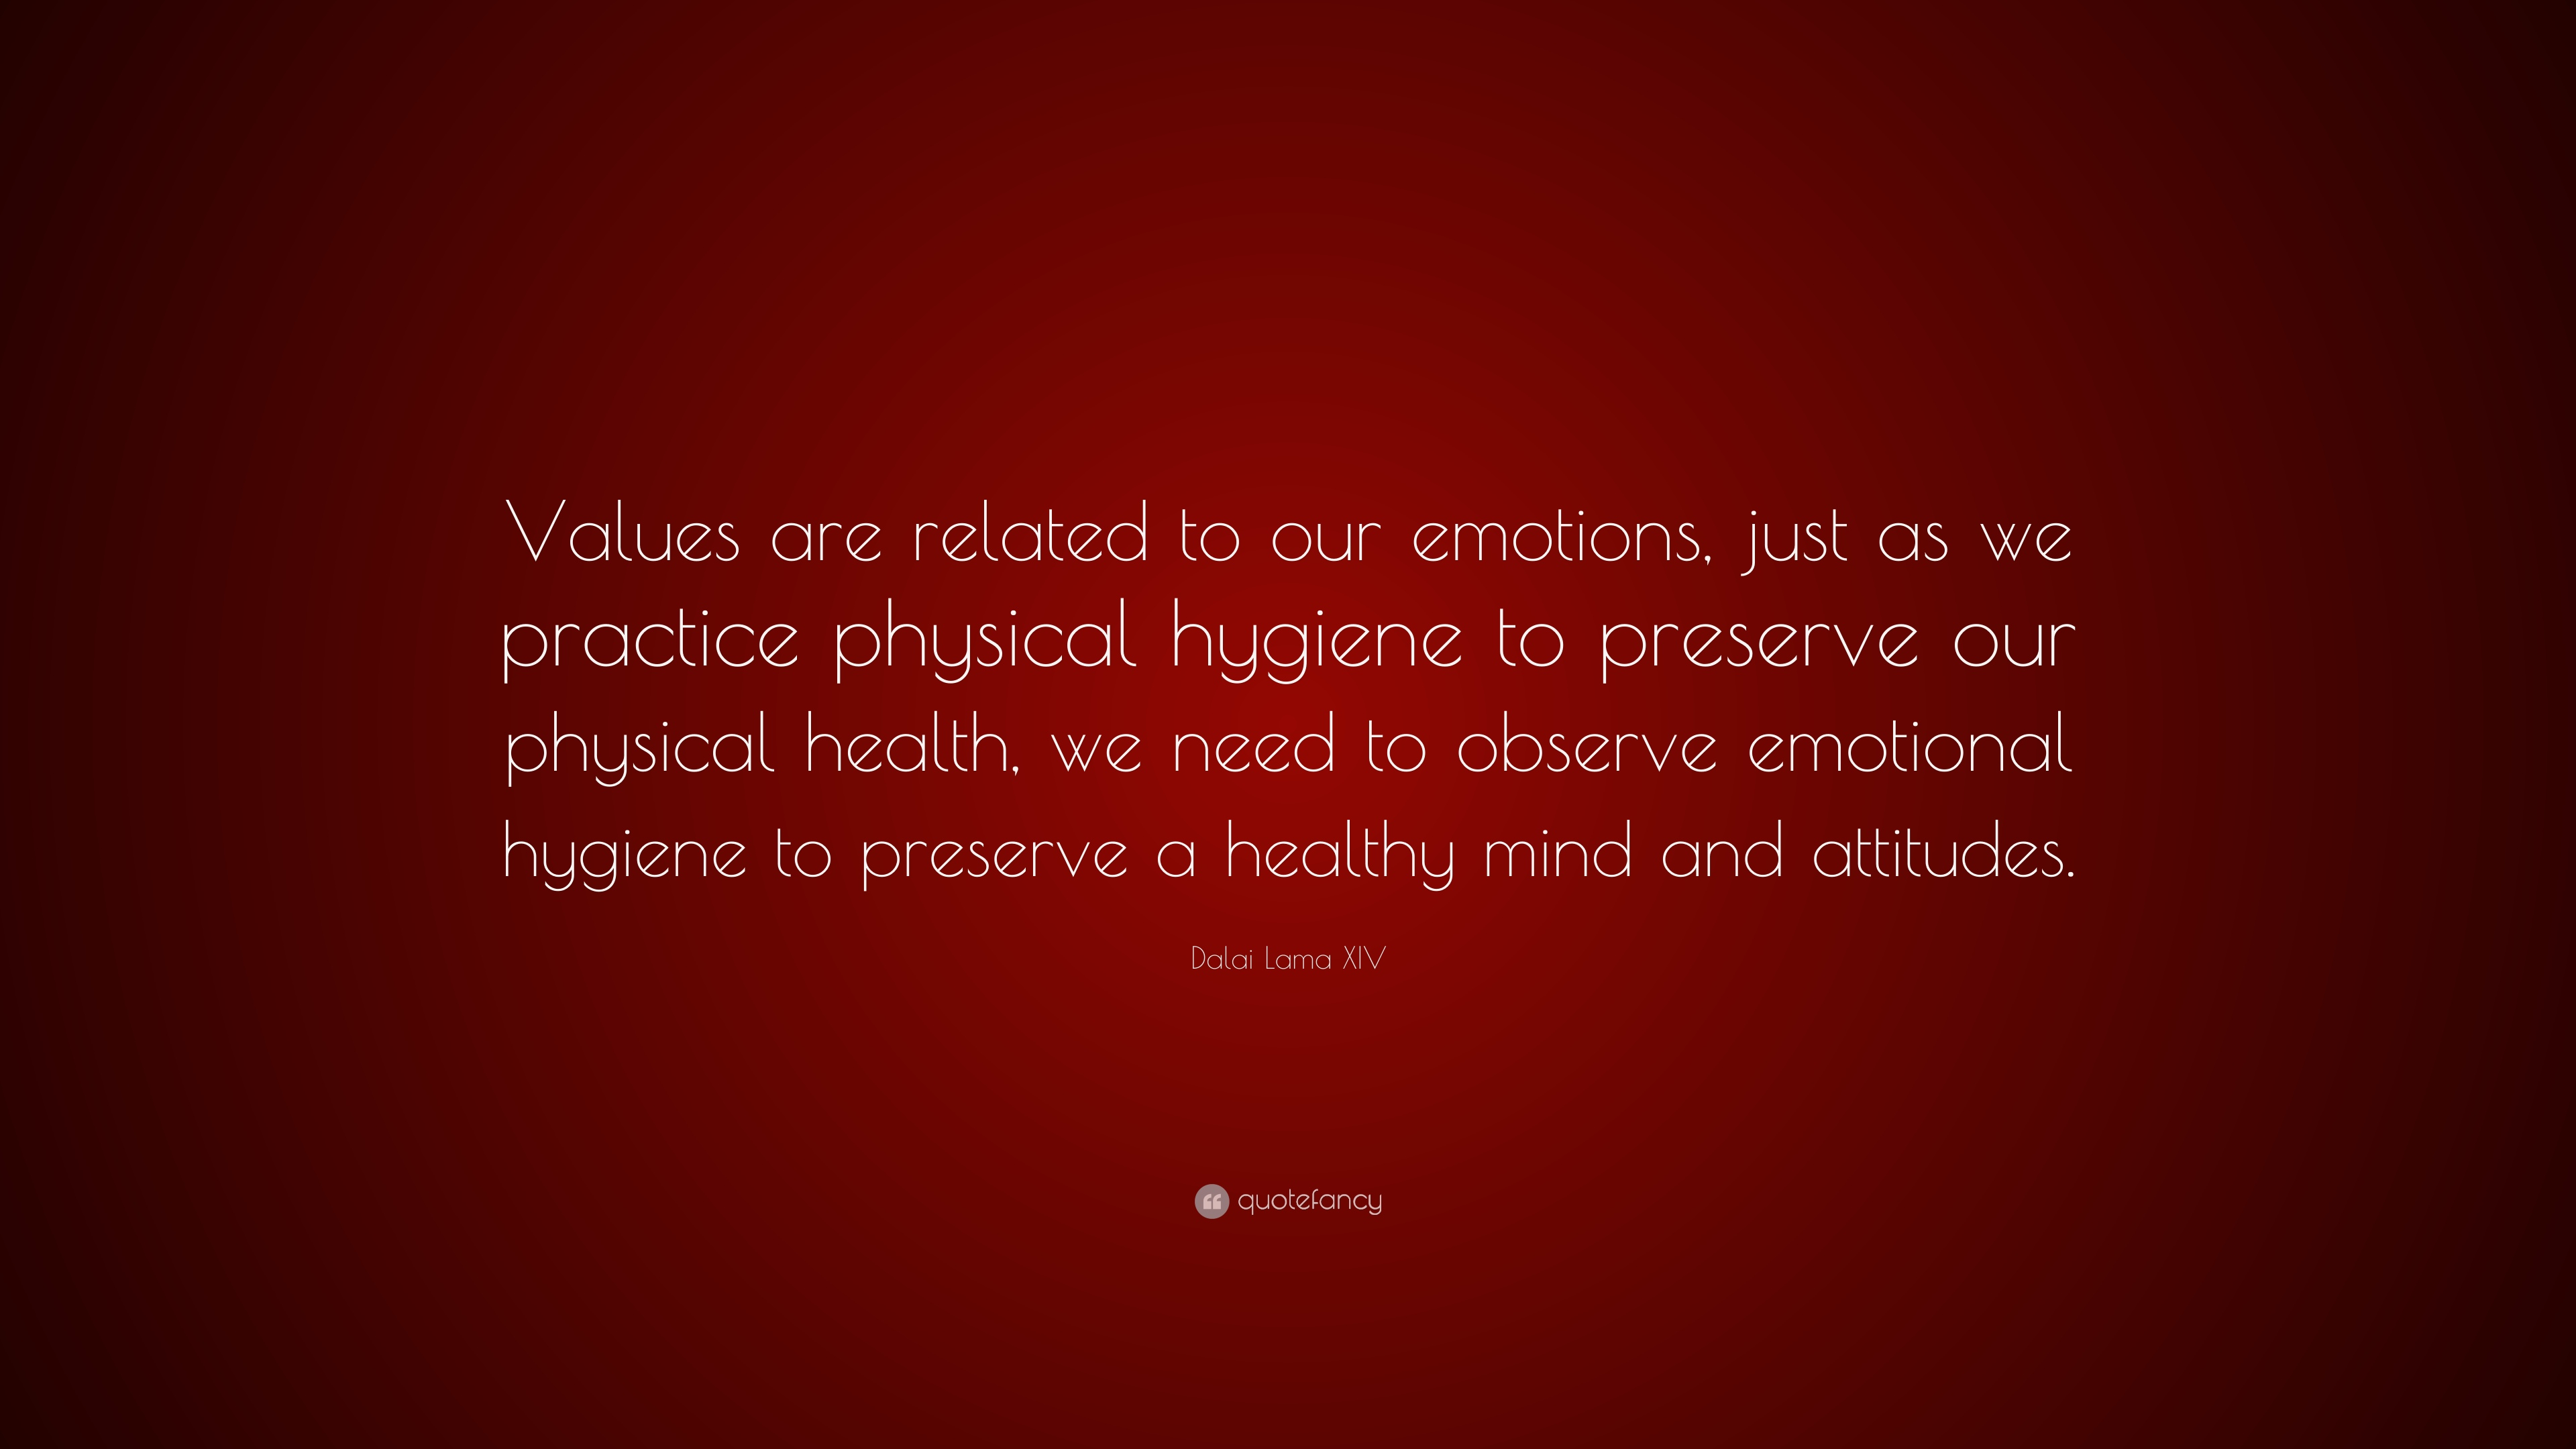 Dalai Lama Xiv Quote Values Are Related To Our Emotions Just As